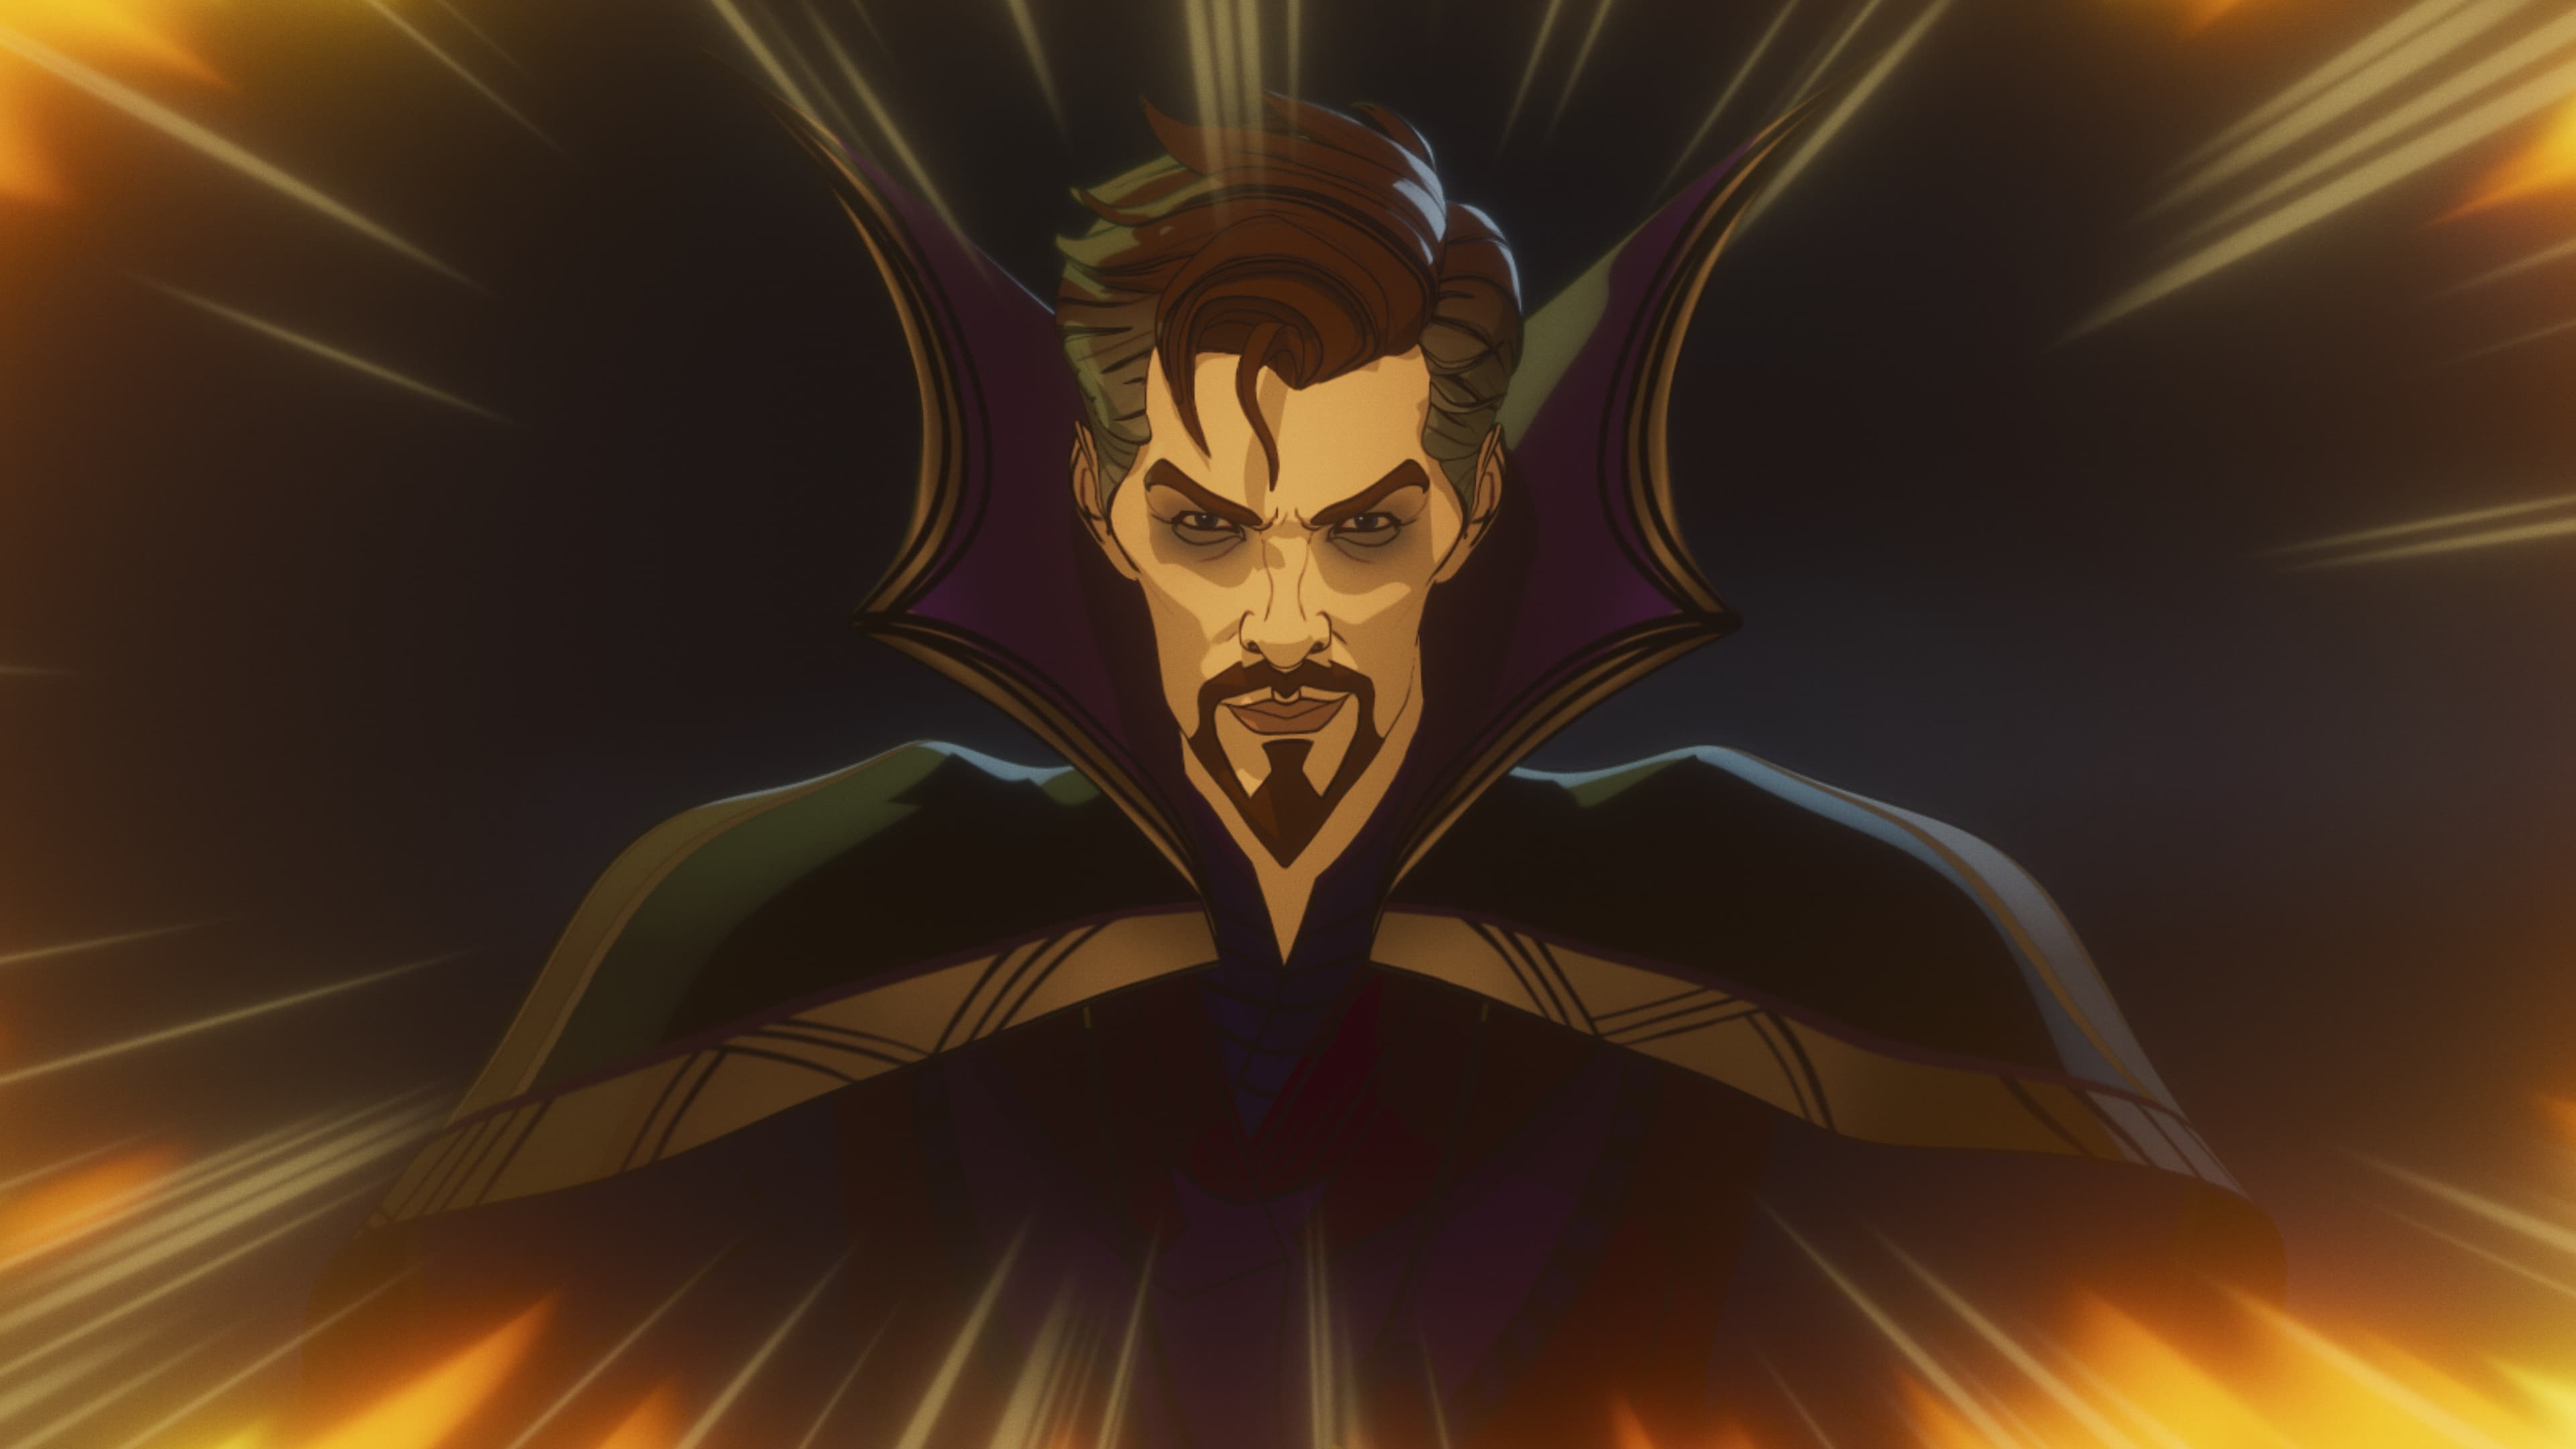 What If… Doctor Strange Lost His Heart Instead of His Hands?